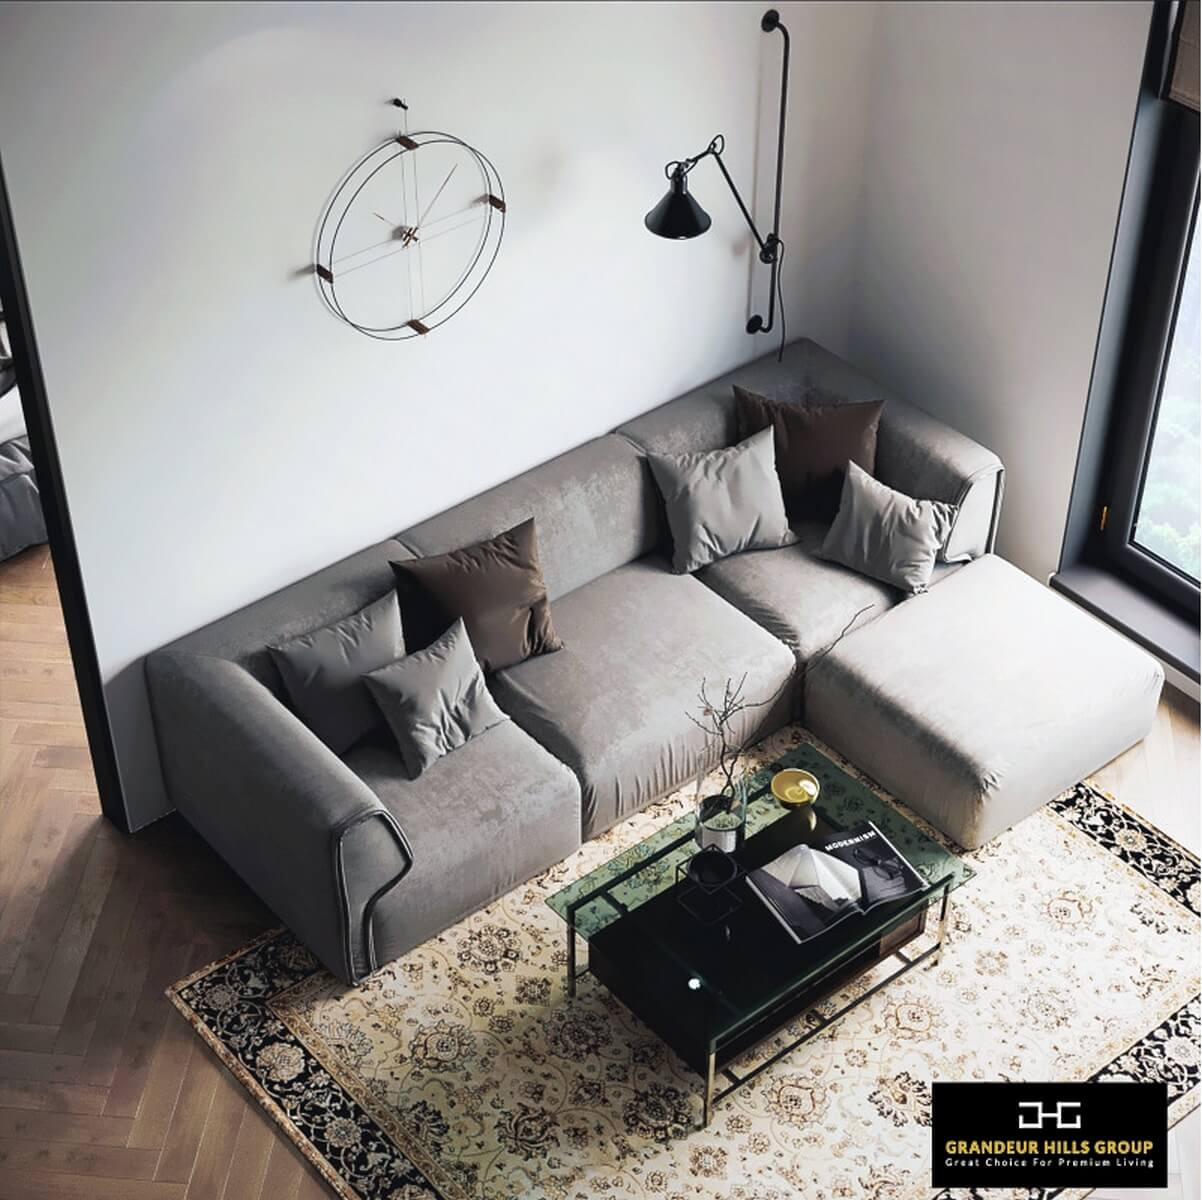 The living room is decorated in gray tones. All pieces of furniture are in perfect harmony with both each other and all surfaces of the living room – the gray walls and the ceiling. The living room looks quite spacious thanks to the correct arrangement of furniture and a small amount of furniture pieces in the room. An elegant rug in the center of the living room unites the color scheme, making the living room beautiful and fully functional. Dreaming of the same interior? Then rely on the best Grandeur Hills Group interior designers who are bound to make your living room stand out!